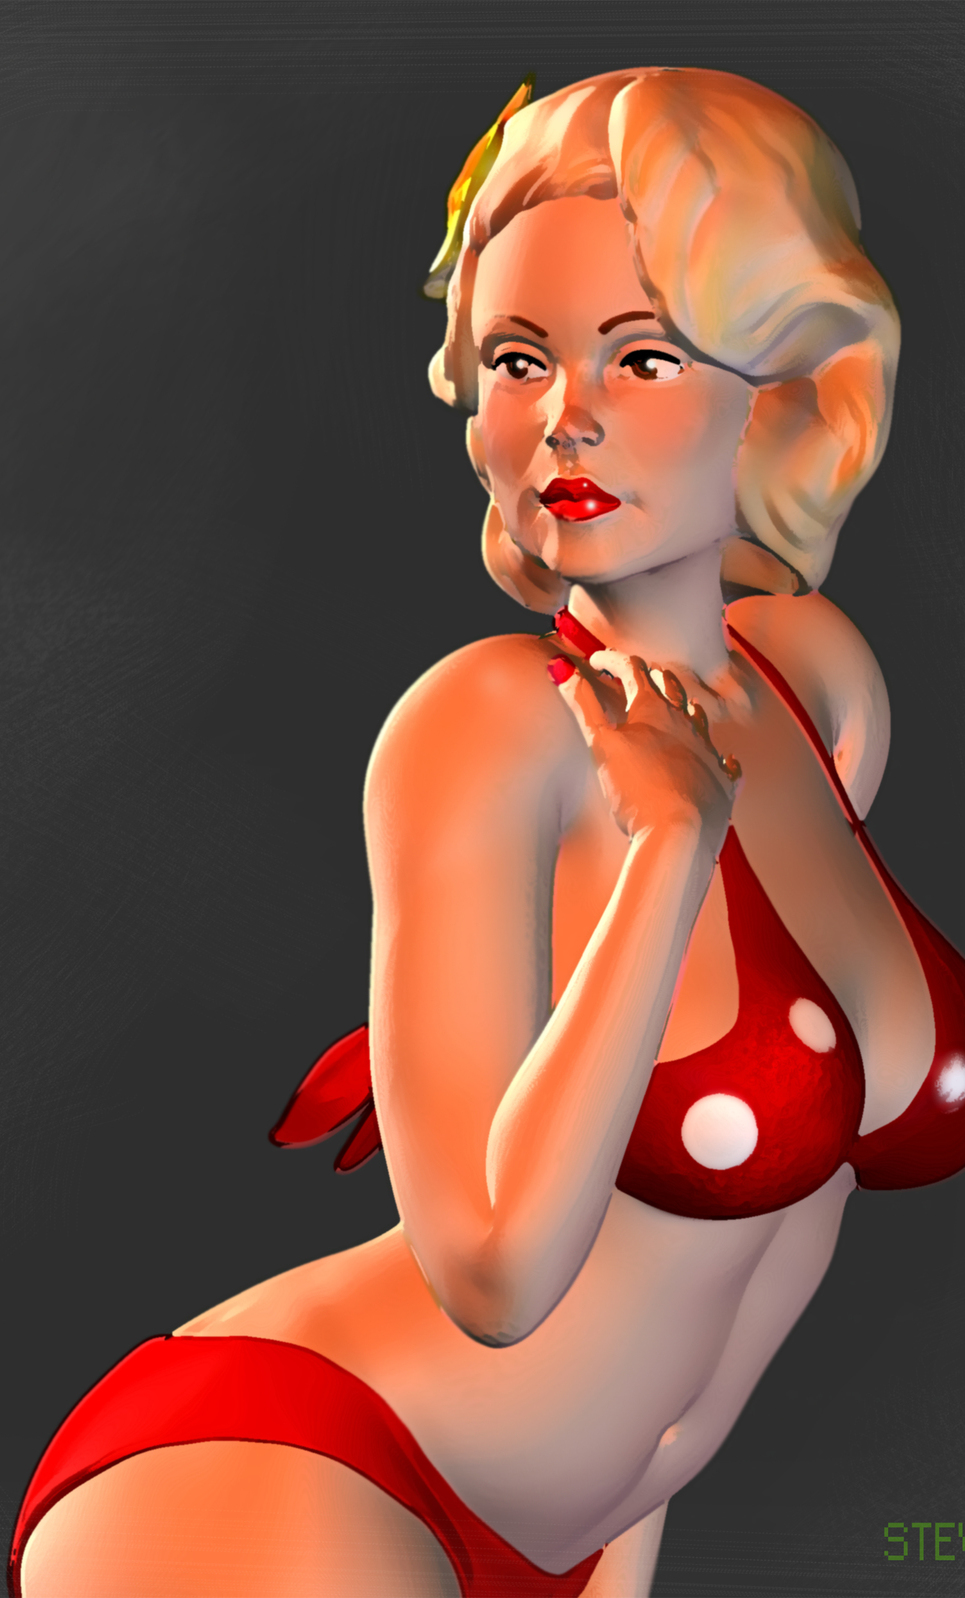 Pinupfinished1 show